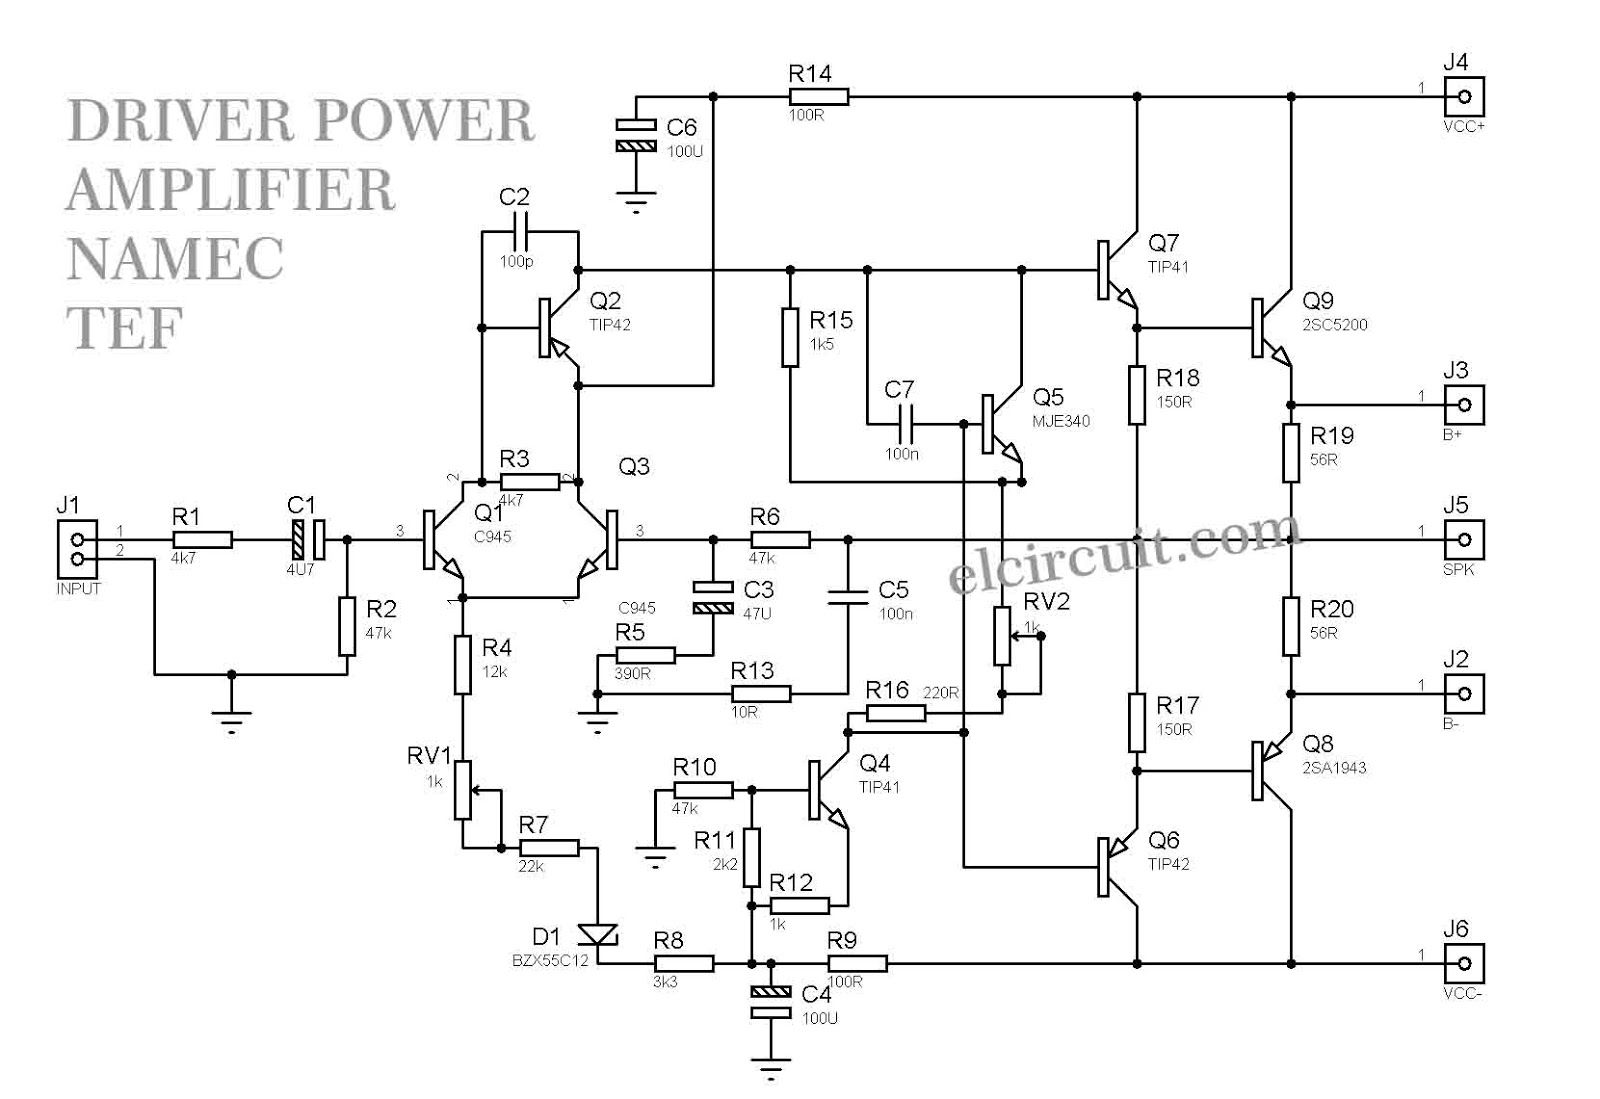 small resolution of 1000w driver power amplifier namec tef electronic circuit electronic circuit circuit diagram audio